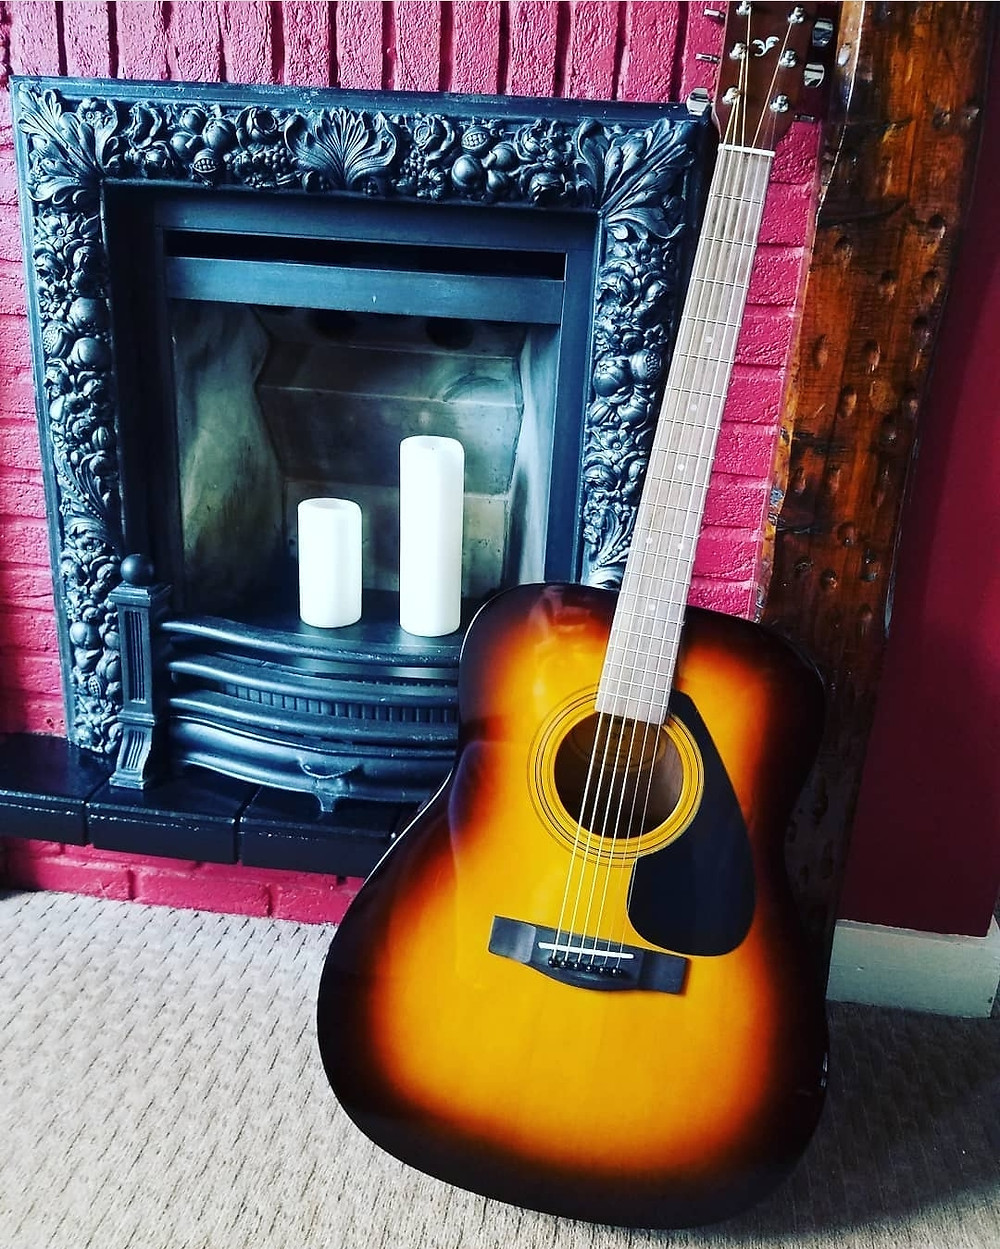 Acoustic guitar beside fireplace